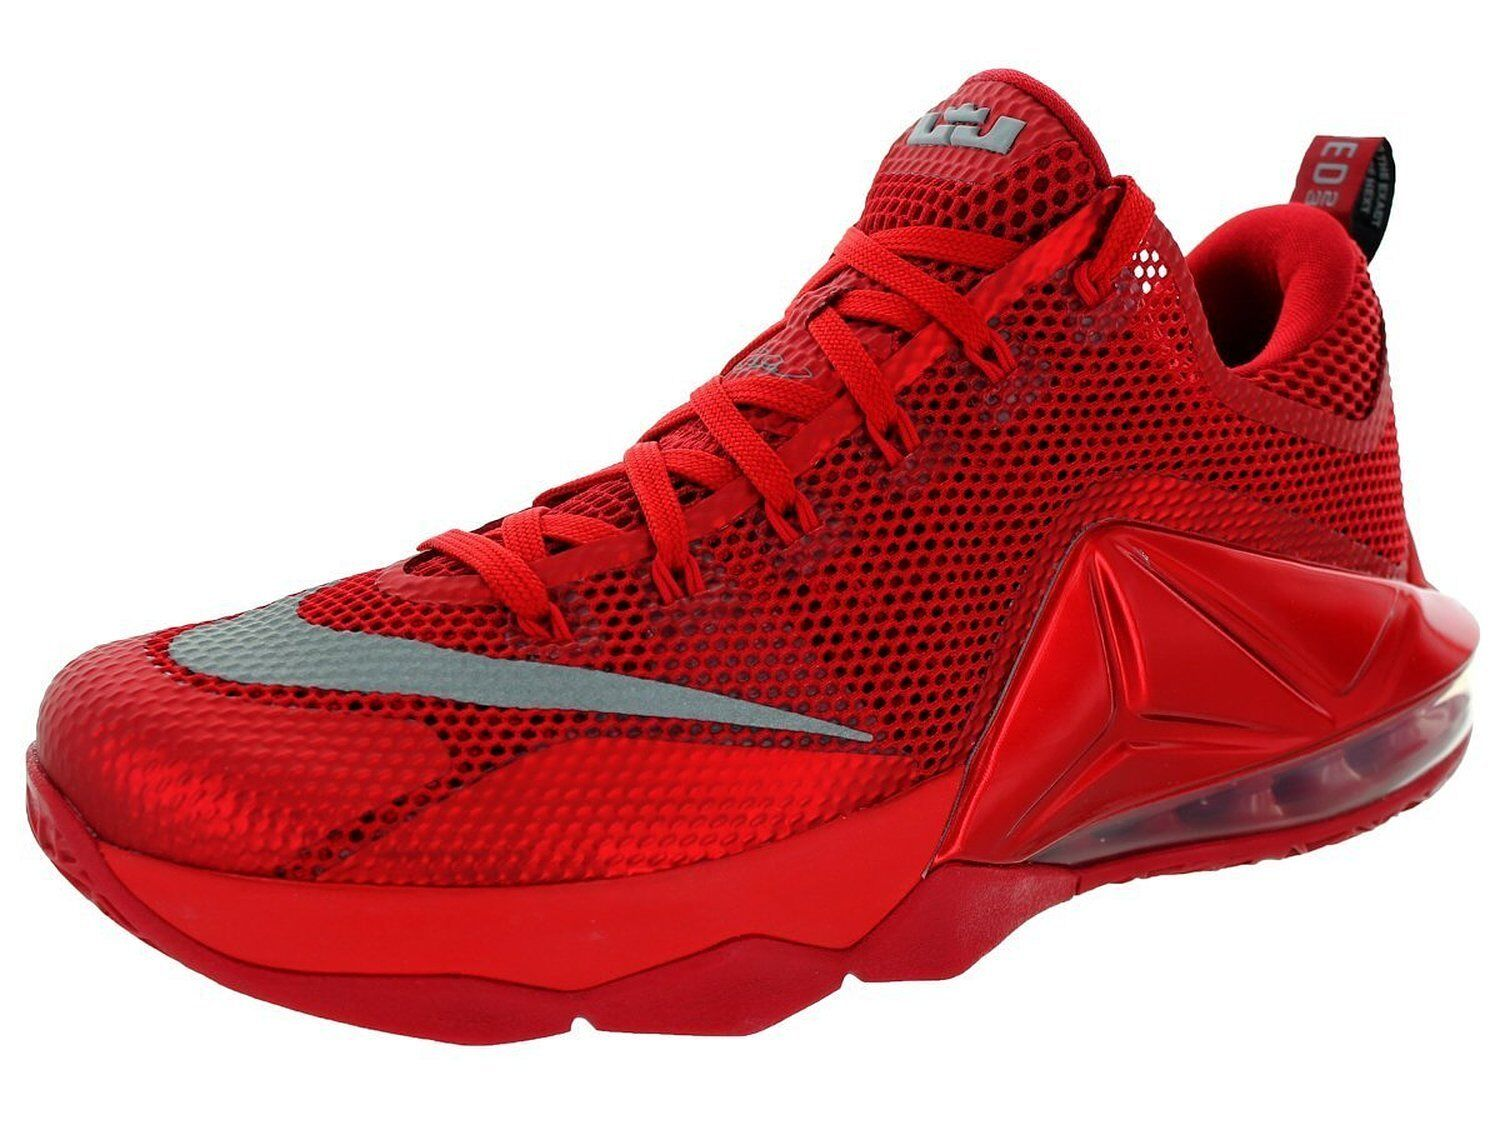 reputable site 8f32d fb514 Nike Lebron XII 12 Low Size 9 Red Silver Mens Basketball Shoe 724557 ...